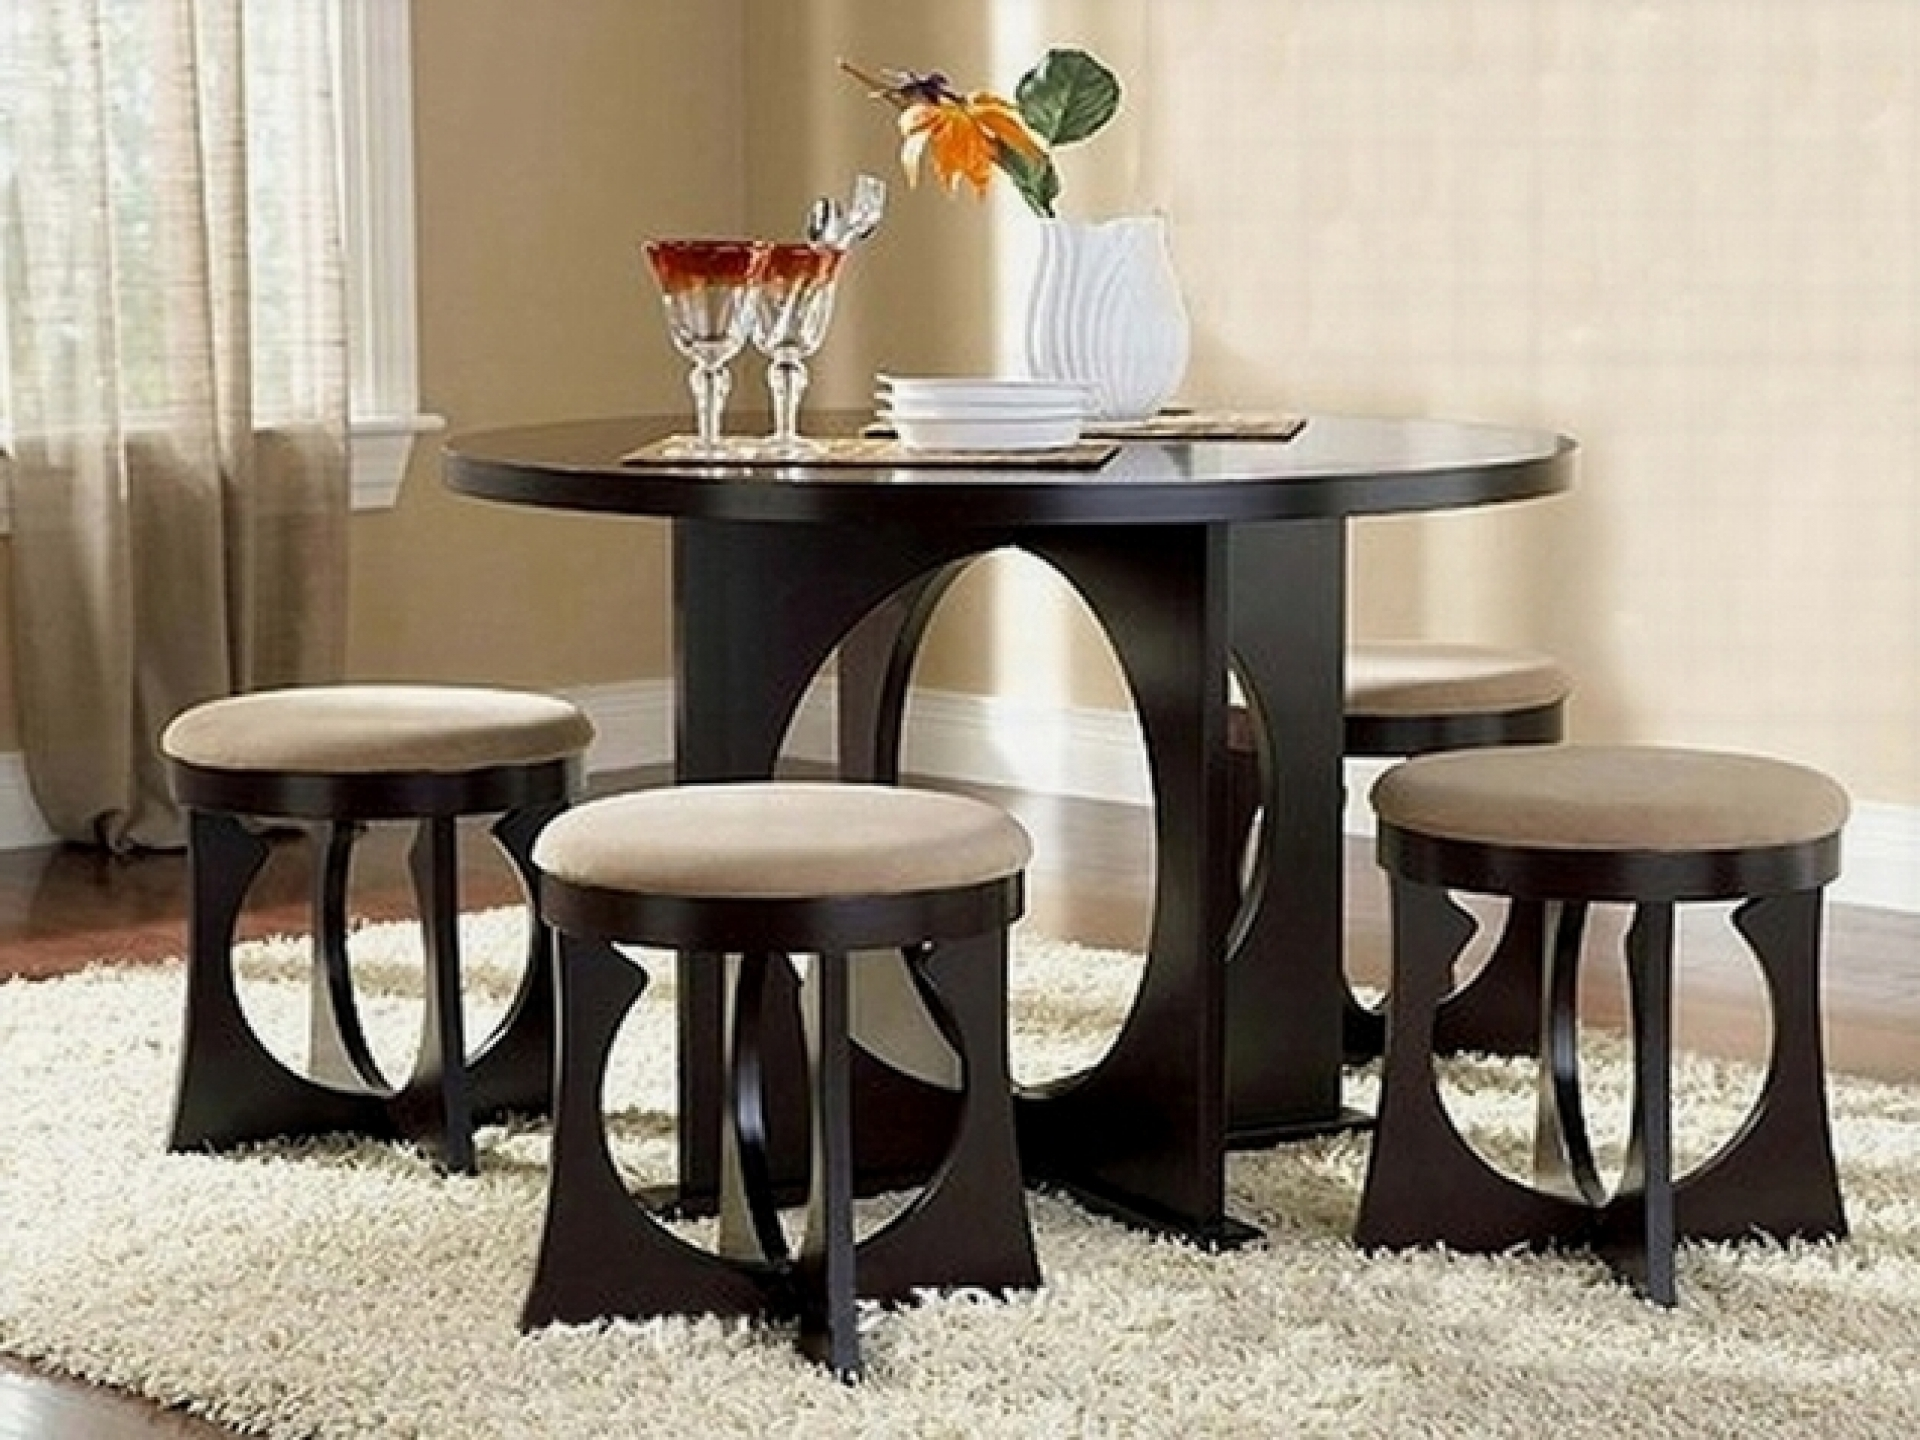 Dining Room Kitchen Table Sets For Small Areas Small Dining Table Pertaining To Most Up To Date Small Dining Tables And Bench Sets (View 7 of 25)